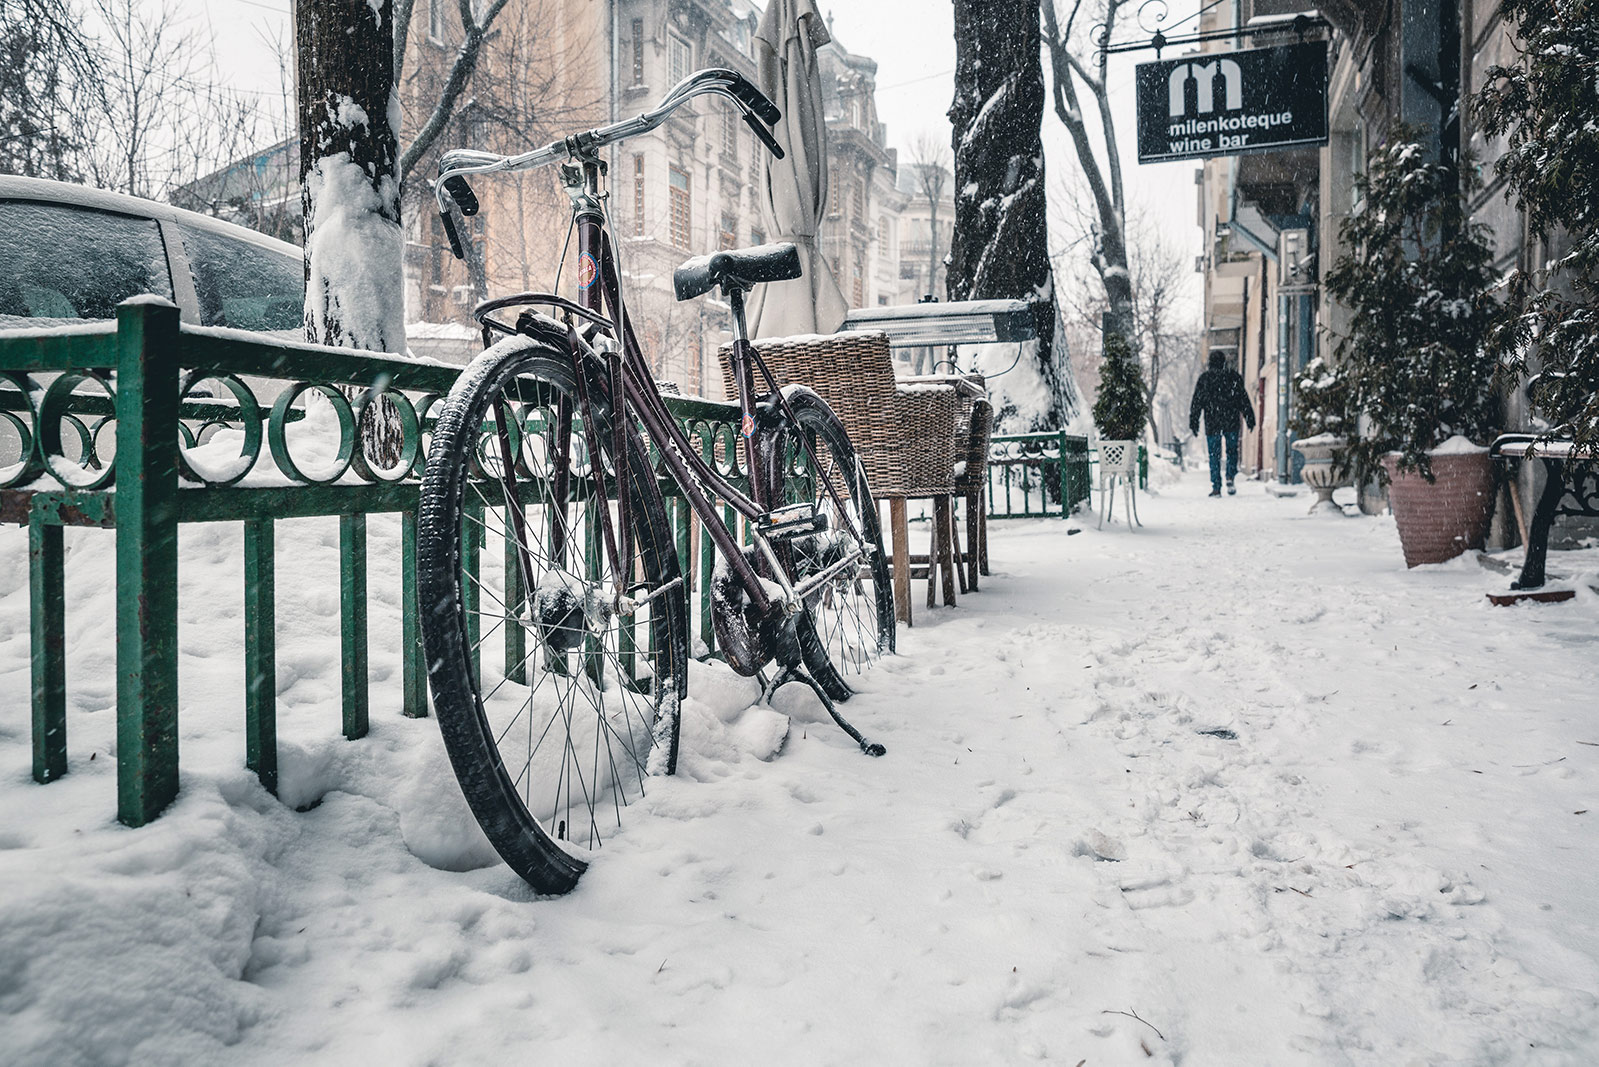 a bike outside in the snow